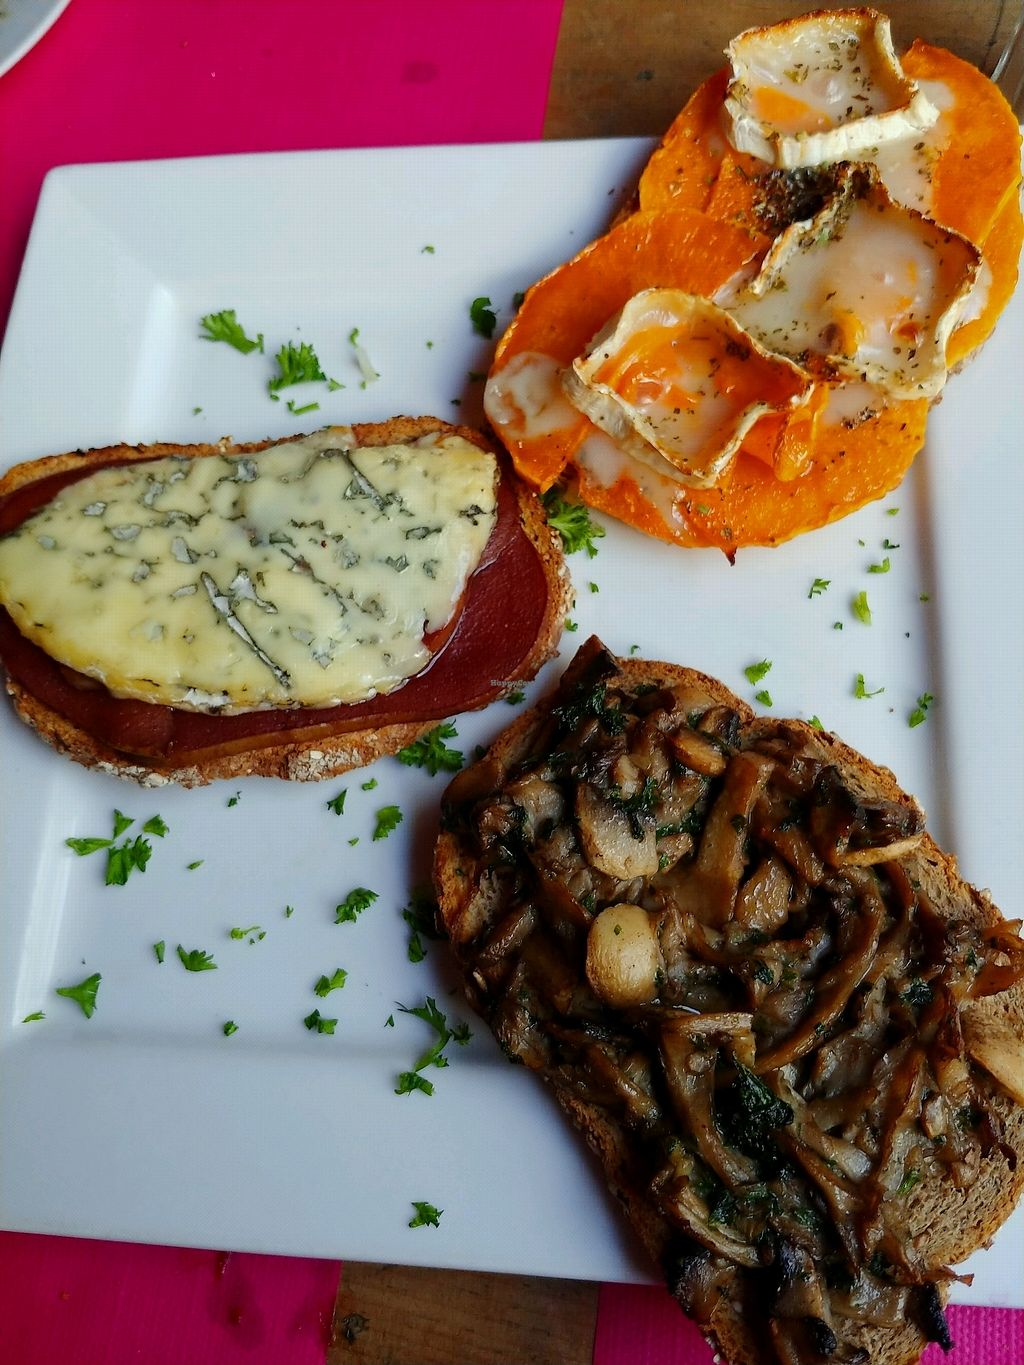 """Photo of Kick Tap'Ass  by <a href=""""/members/profile/AthenaTrombly"""">AthenaTrombly</a> <br/>toast with mushrooms for vegan, toast with squash and cheese for vegetarian, toast with meat and cheese for meat eater <br/> April 5, 2018  - <a href='/contact/abuse/image/57652/381283'>Report</a>"""